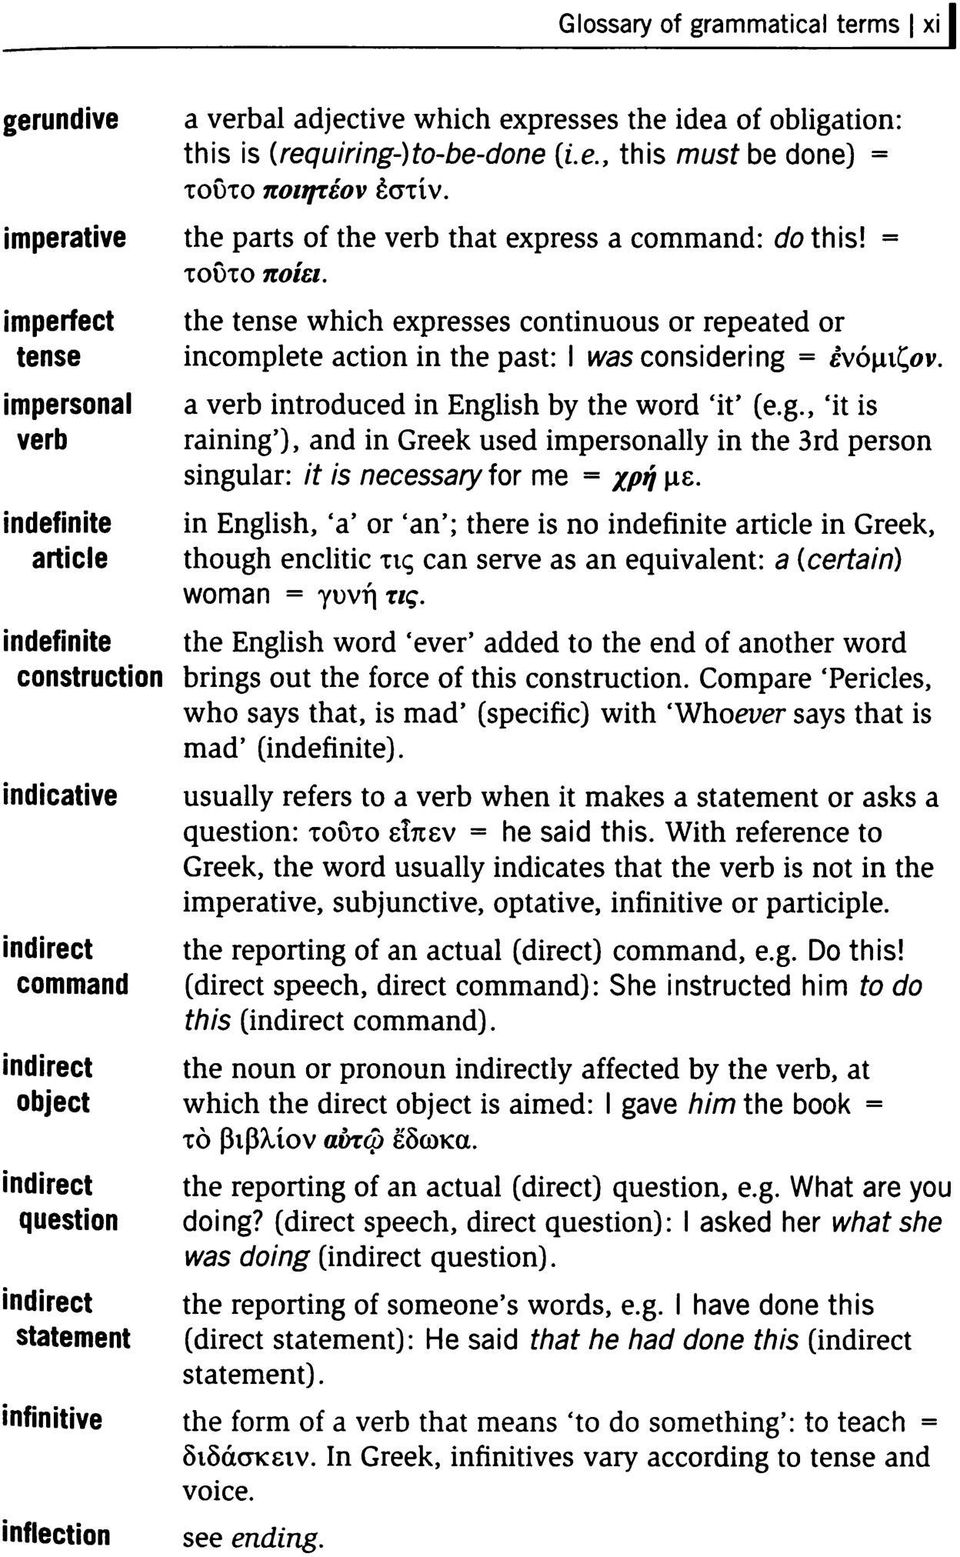 imperfect tense impersonal verb indefinite article the tense which expresses continuous or repeated or incomplete action in the past: I was considering = ενόμιζον.